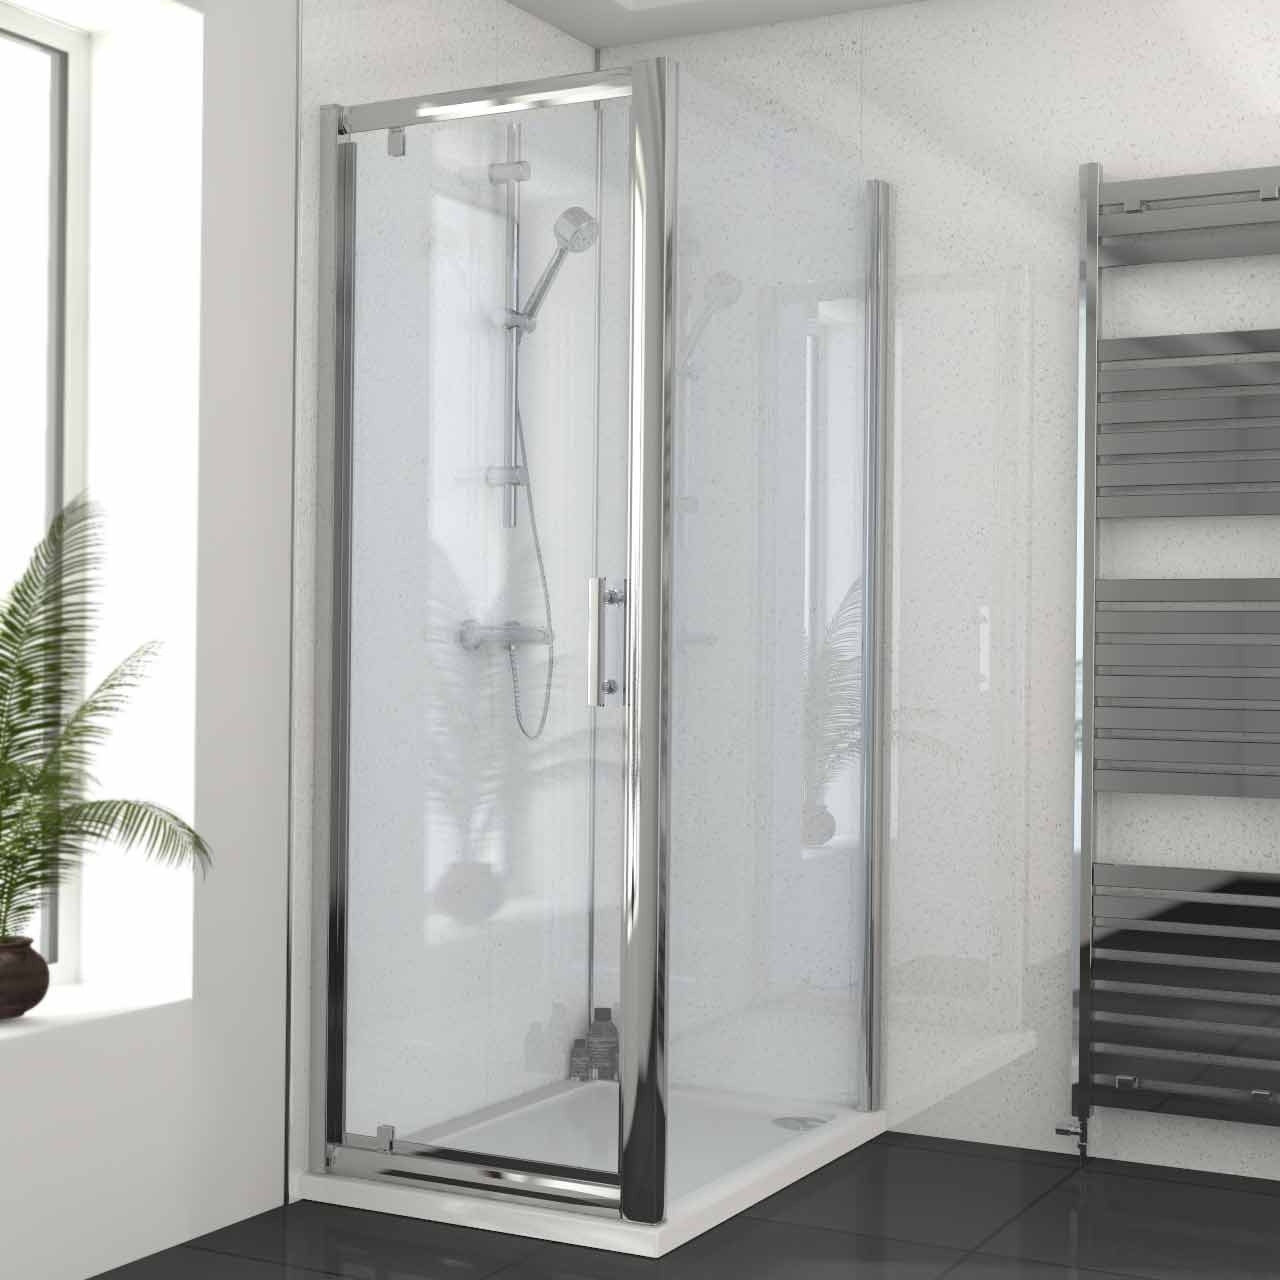 Series 6 700mm x 1000mm Pivot Door Shower Enclosure